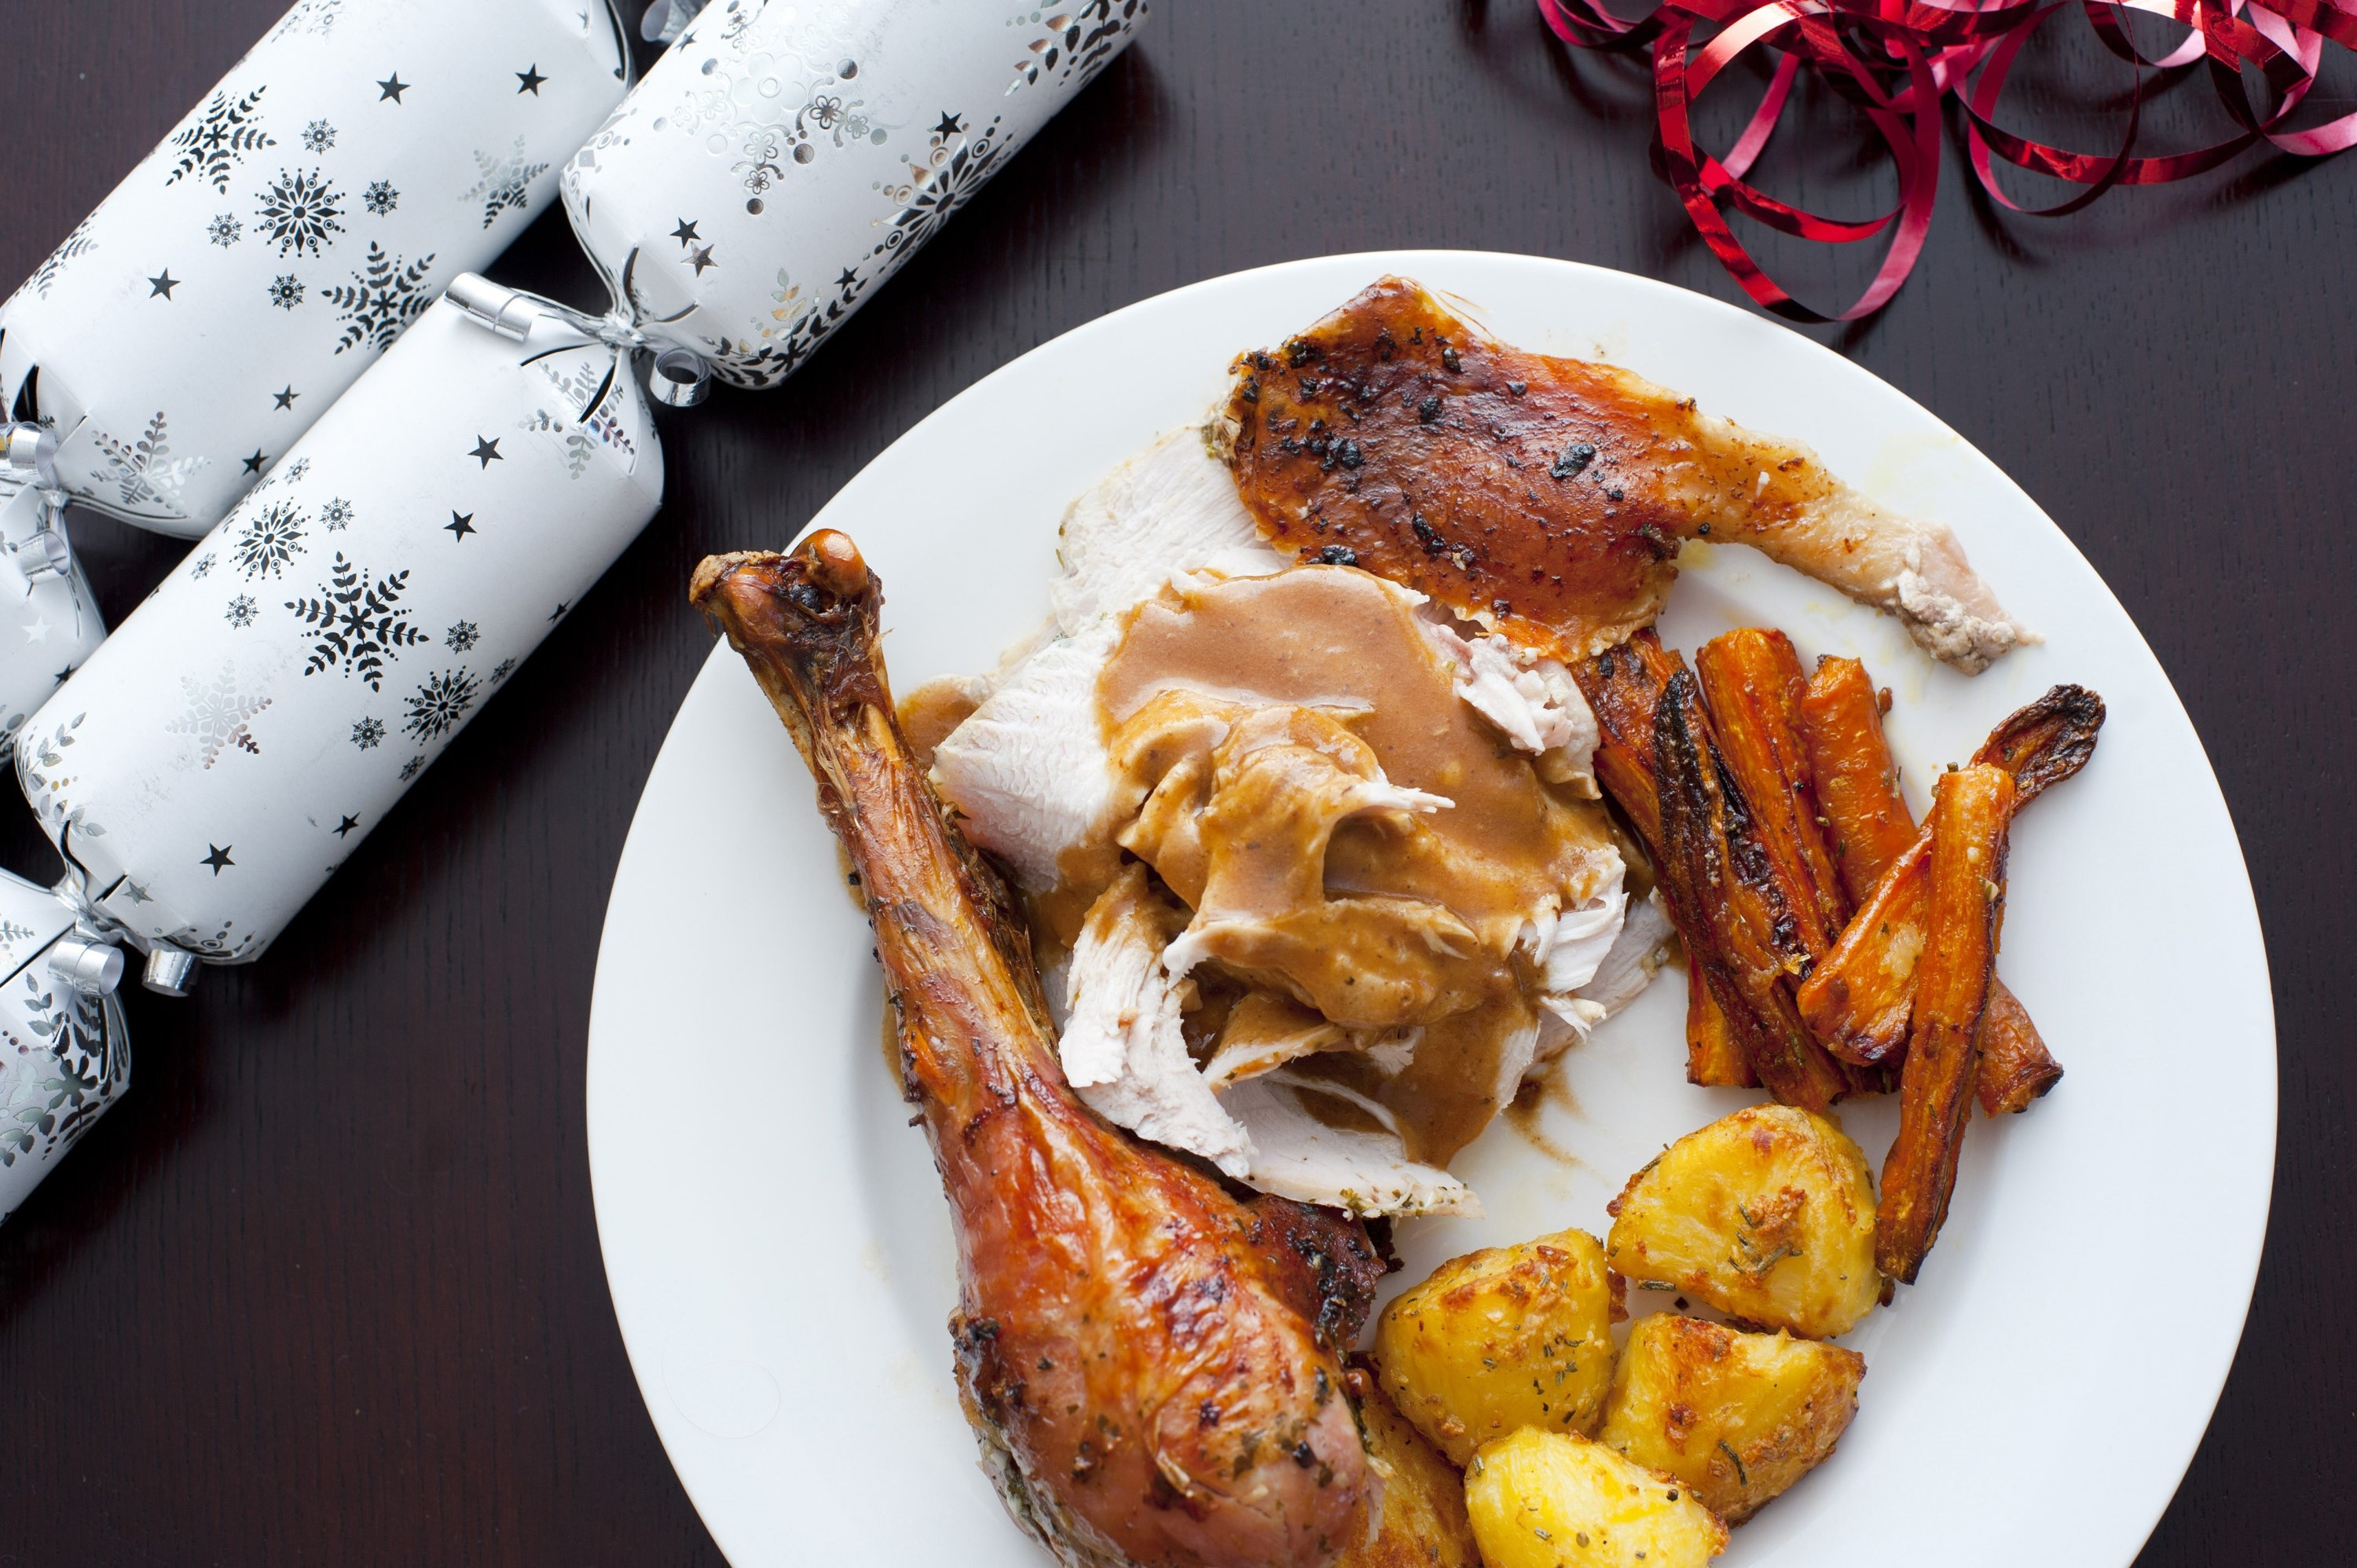 Tasty roast Christmas dinner with turkey, potatoes and carrots topped with gravy, overhead view